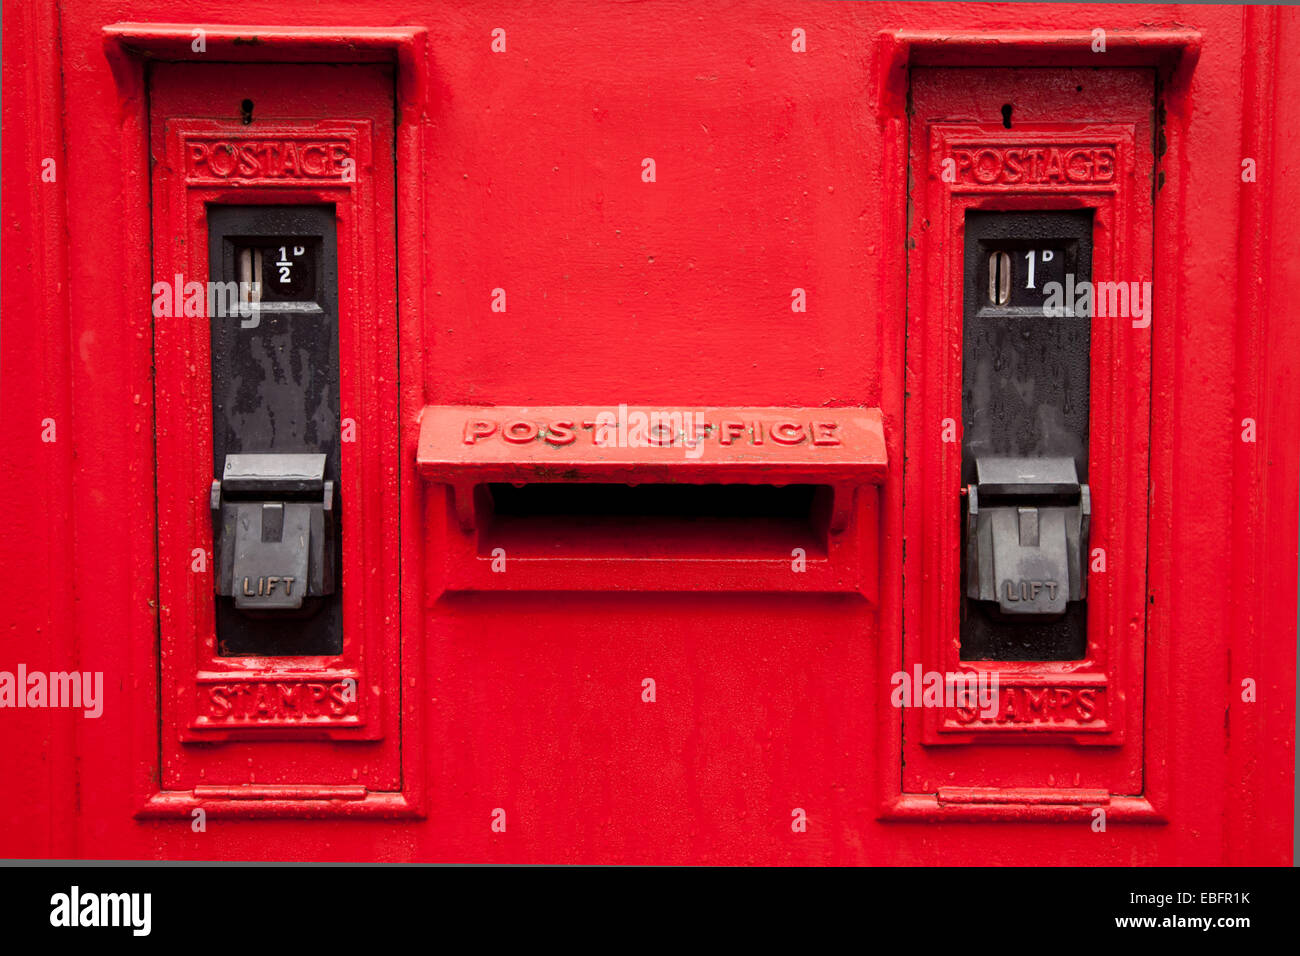 Old fashioned posting box box in use in the UK during the middle twentieth century - Stock Image